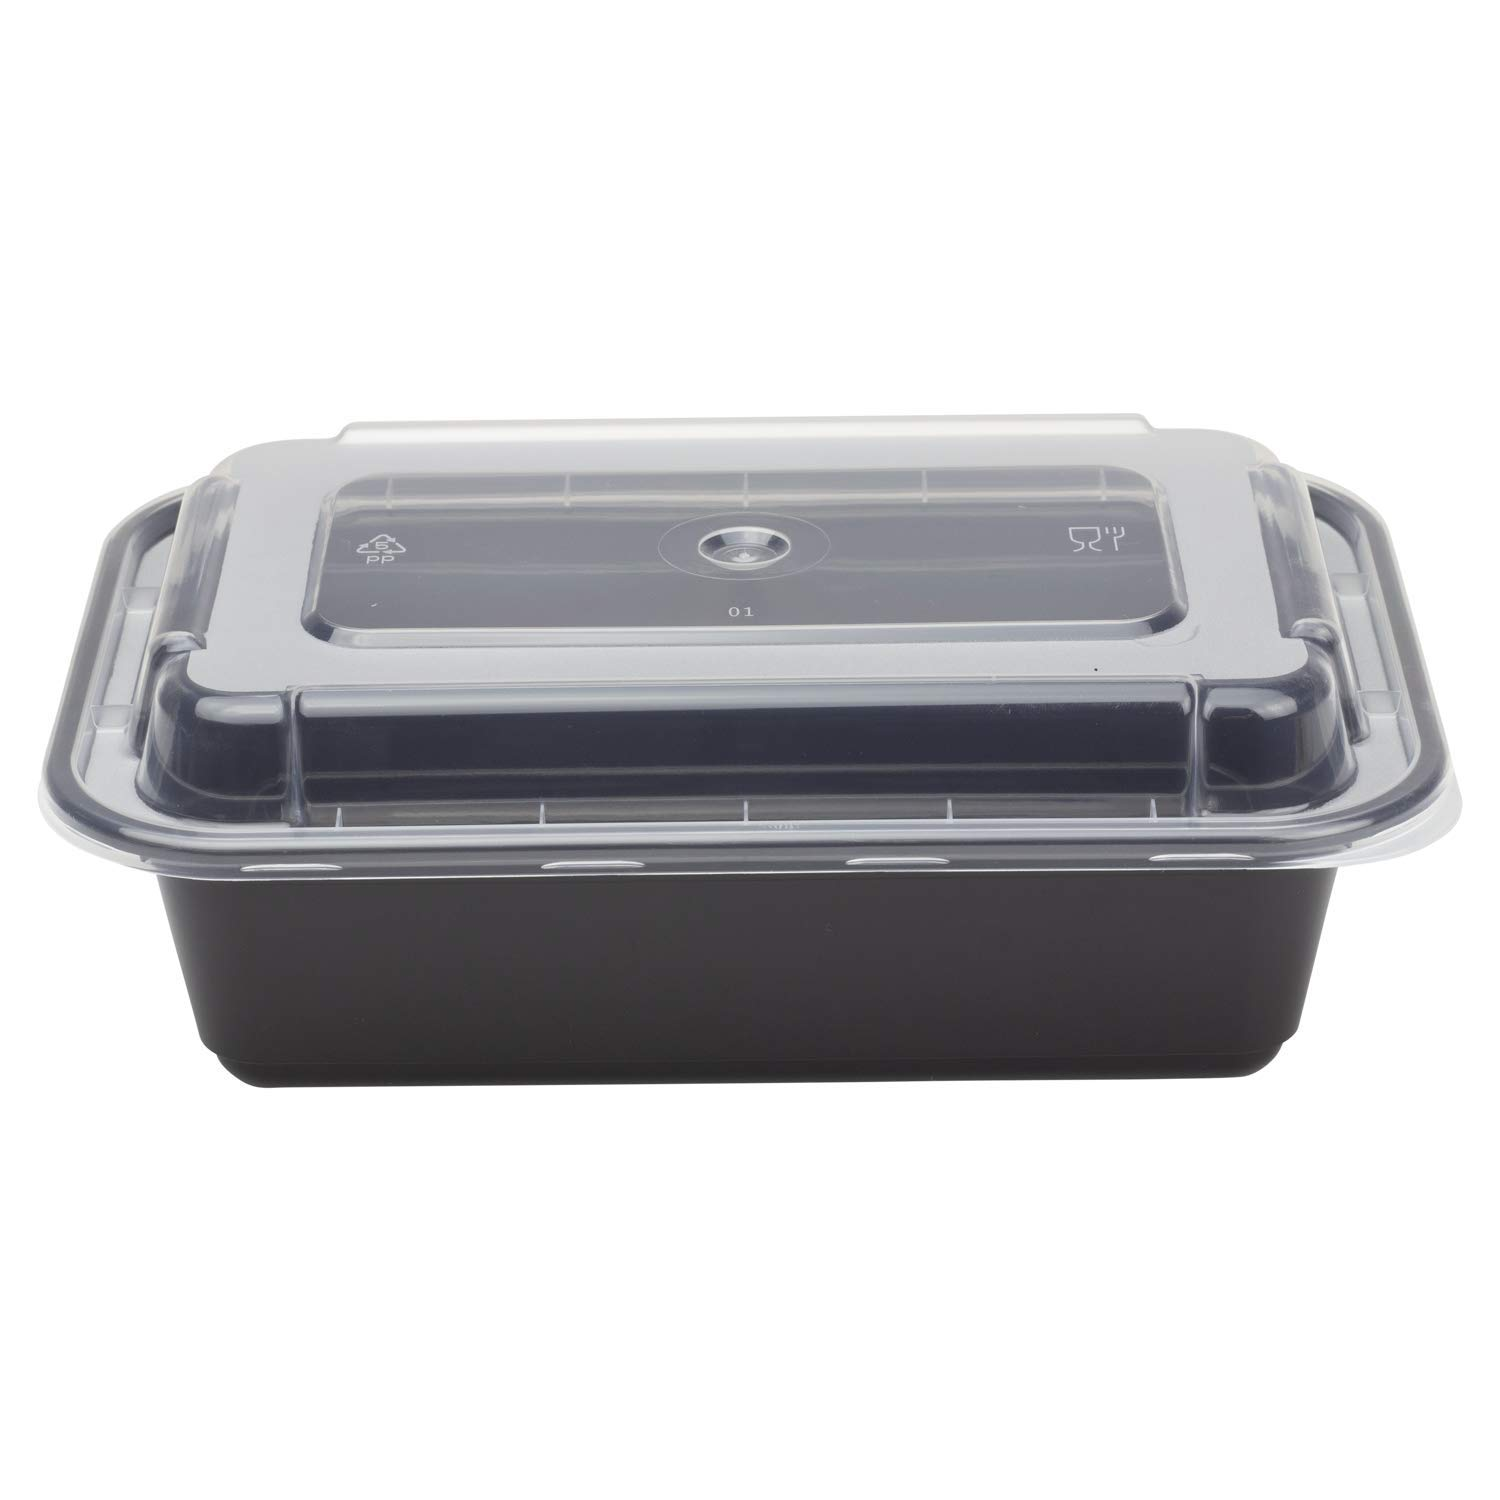 Karat IM-FC1024B 24 oz. PP Injection Molding Microwaveable Food Containers with Clear Lids, Rectangular - Black (Case of 150)